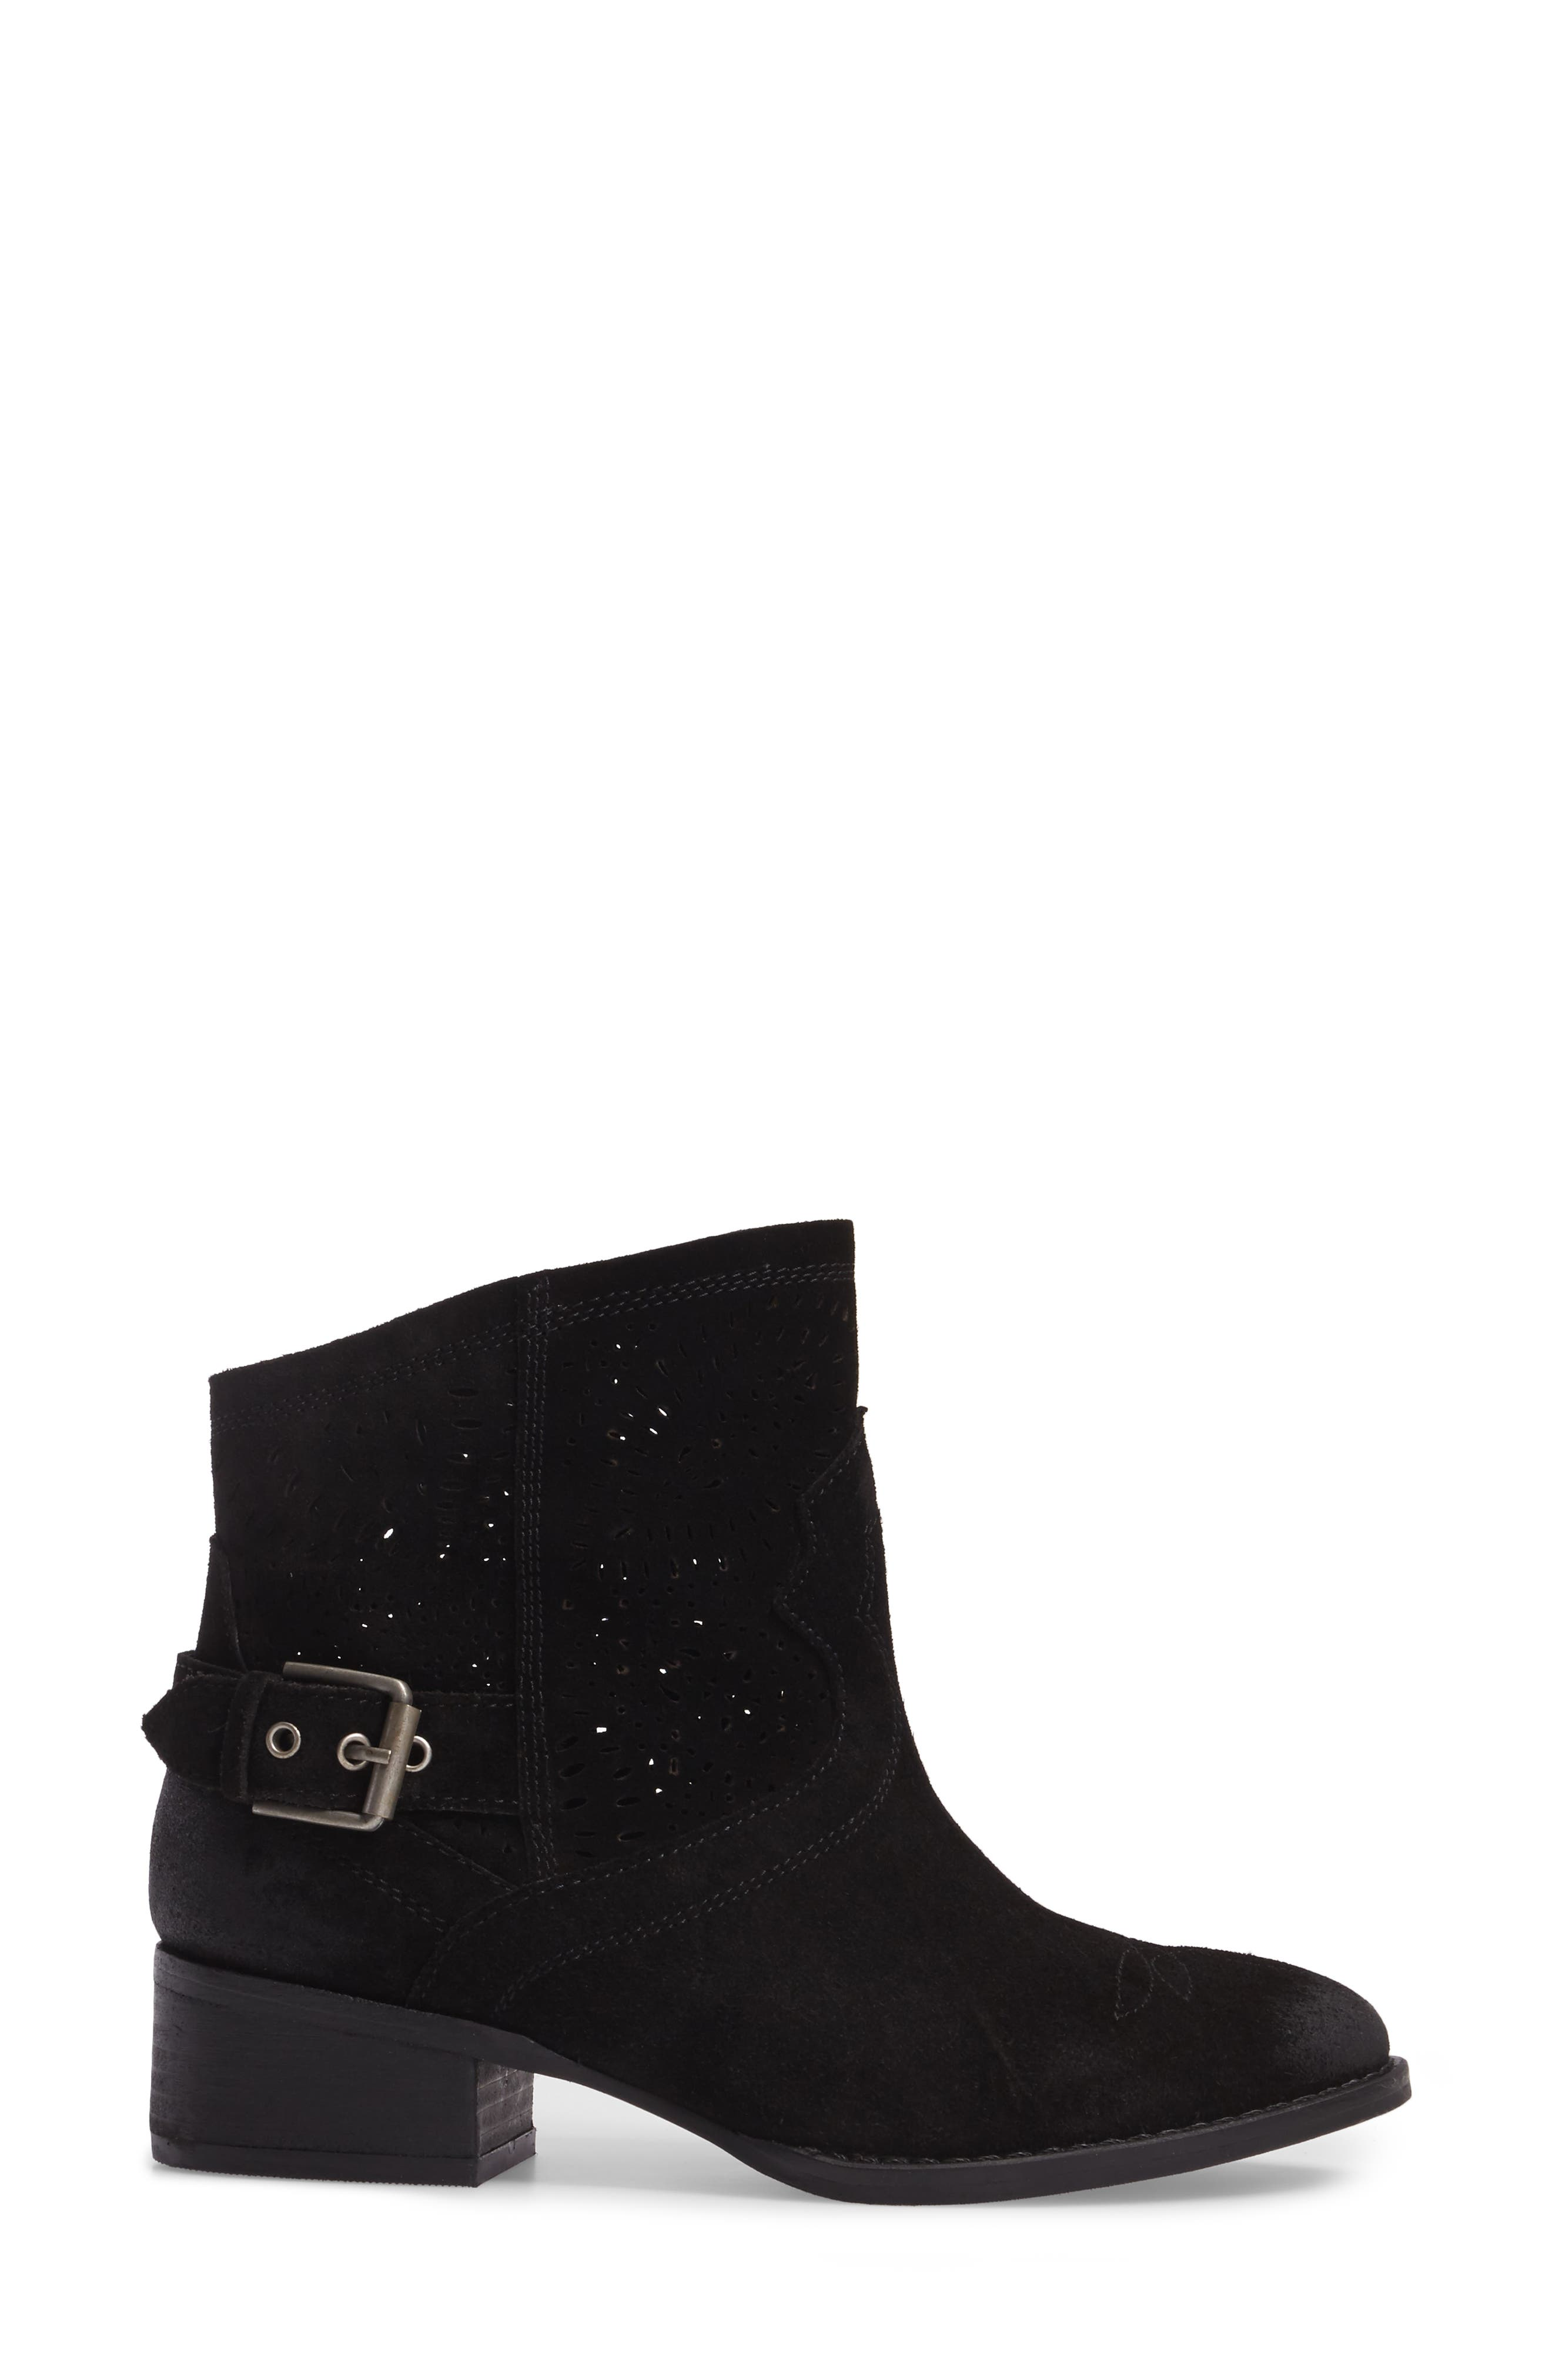 Zoey Perforated Bootie,                             Alternate thumbnail 3, color,                             001